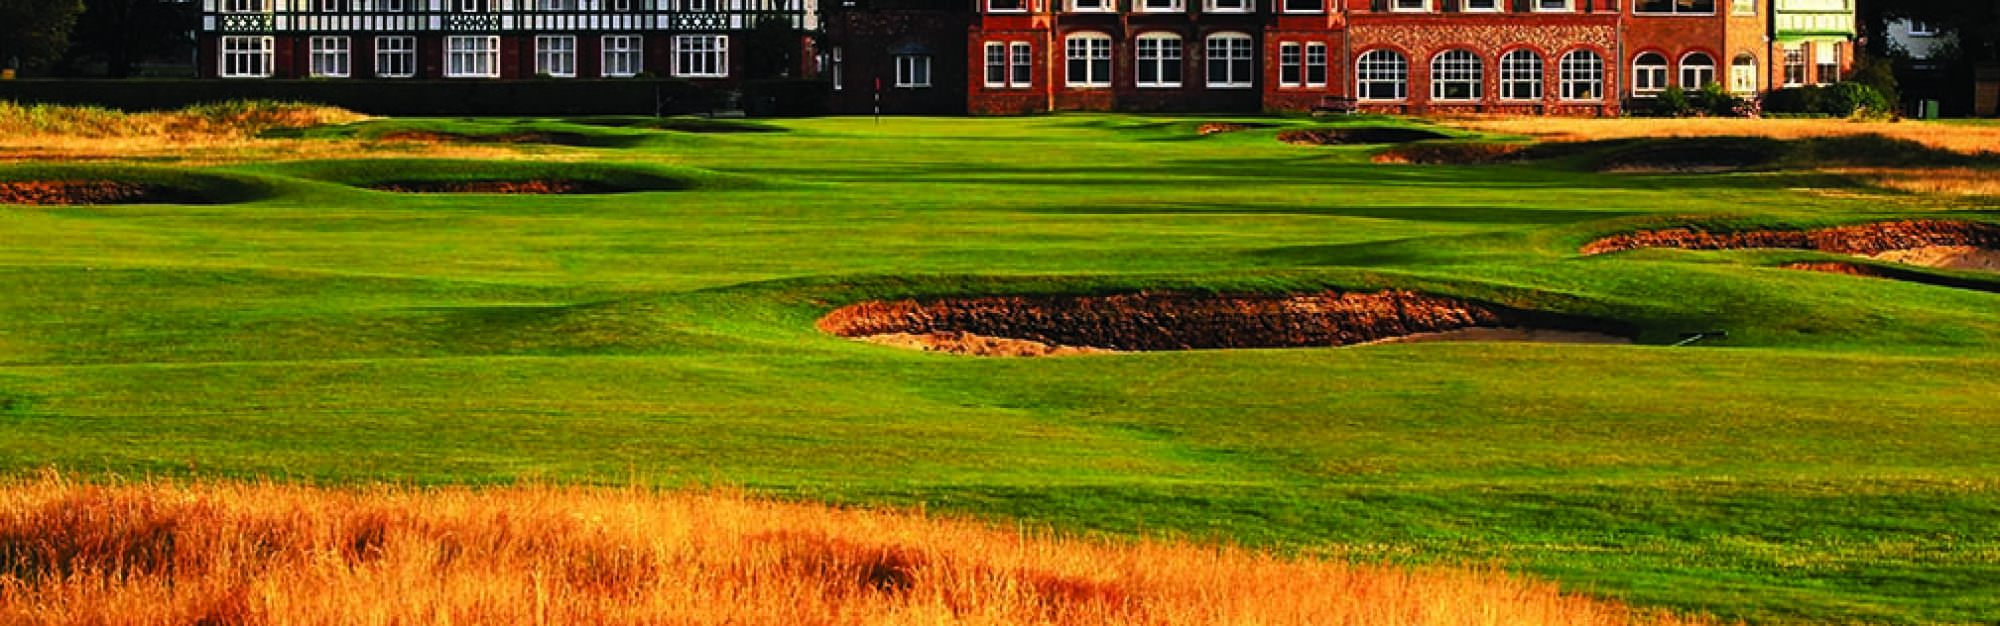 Played by NCG: Royal Lytham & St Annes